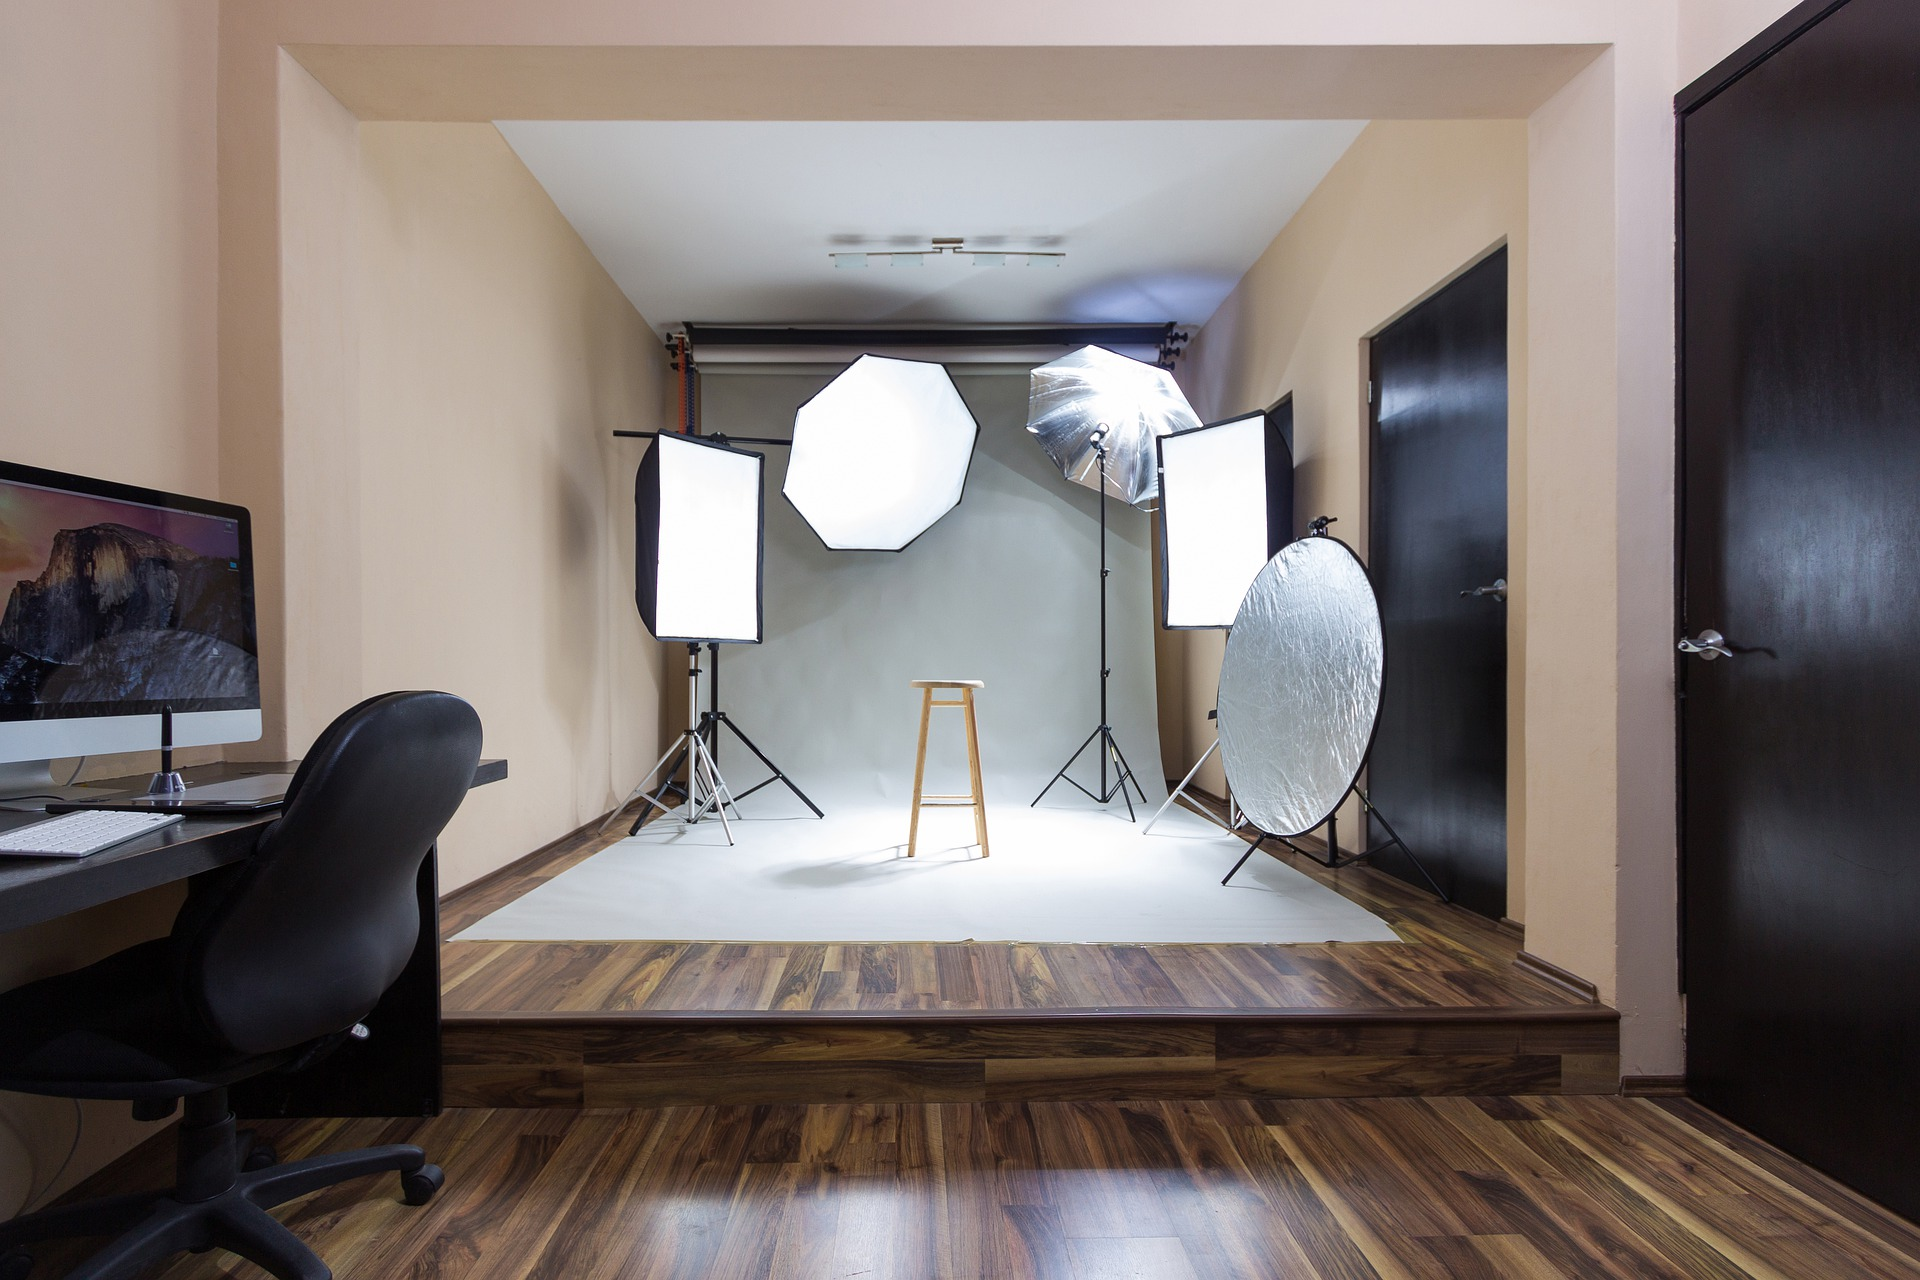 Light Box Photography inside the studio